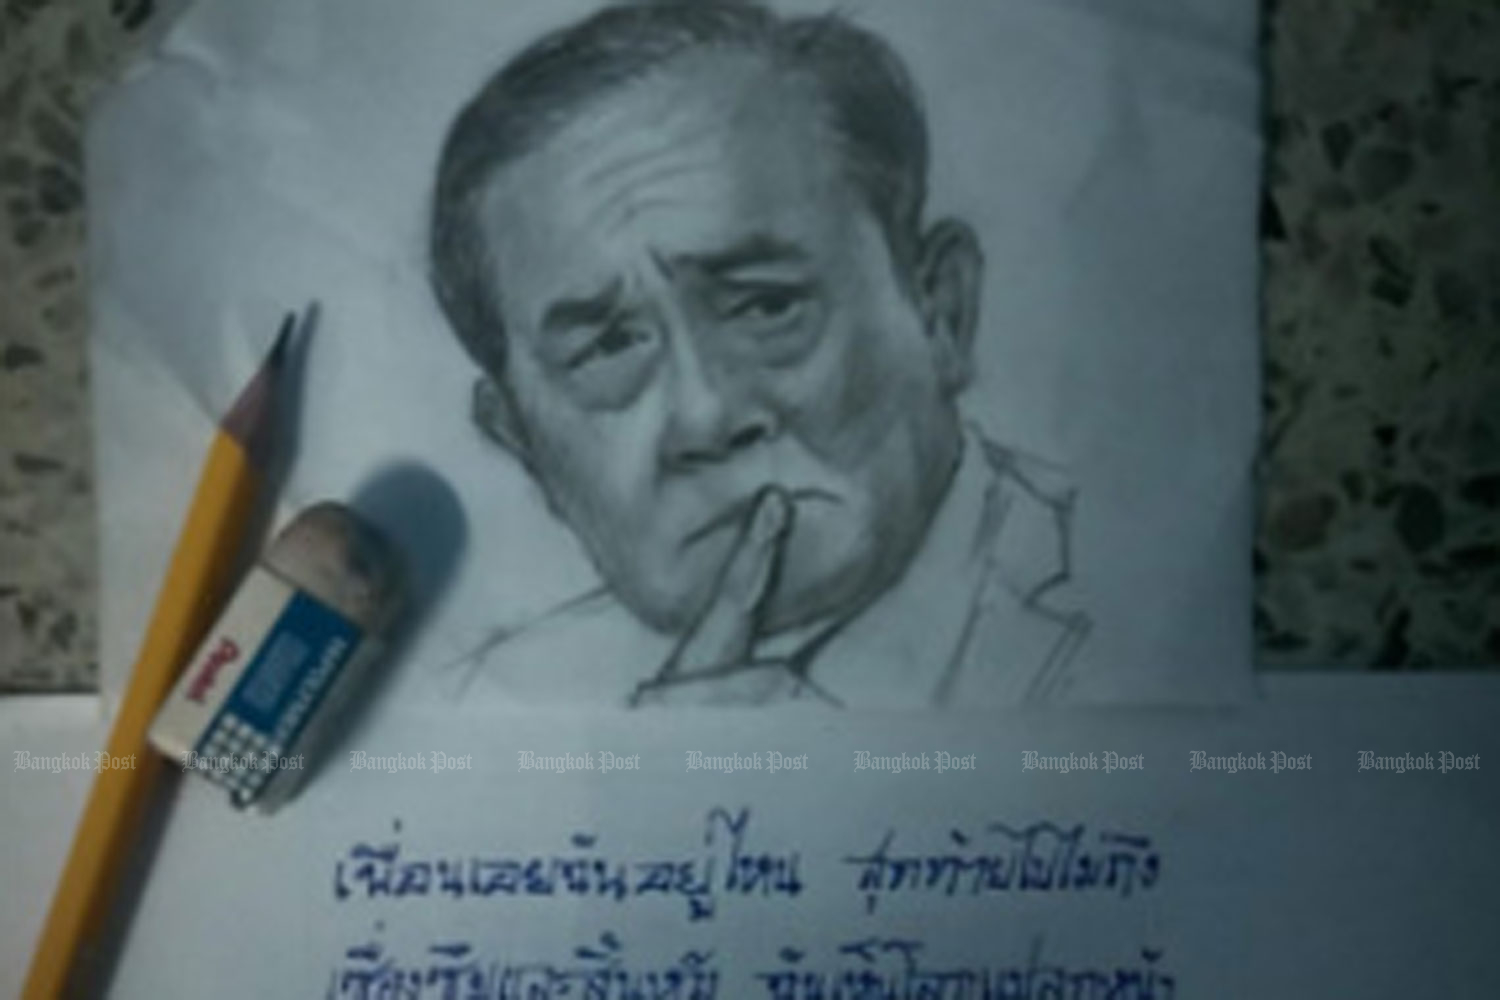 Woman commits suicide after posting drawing of Prayut online